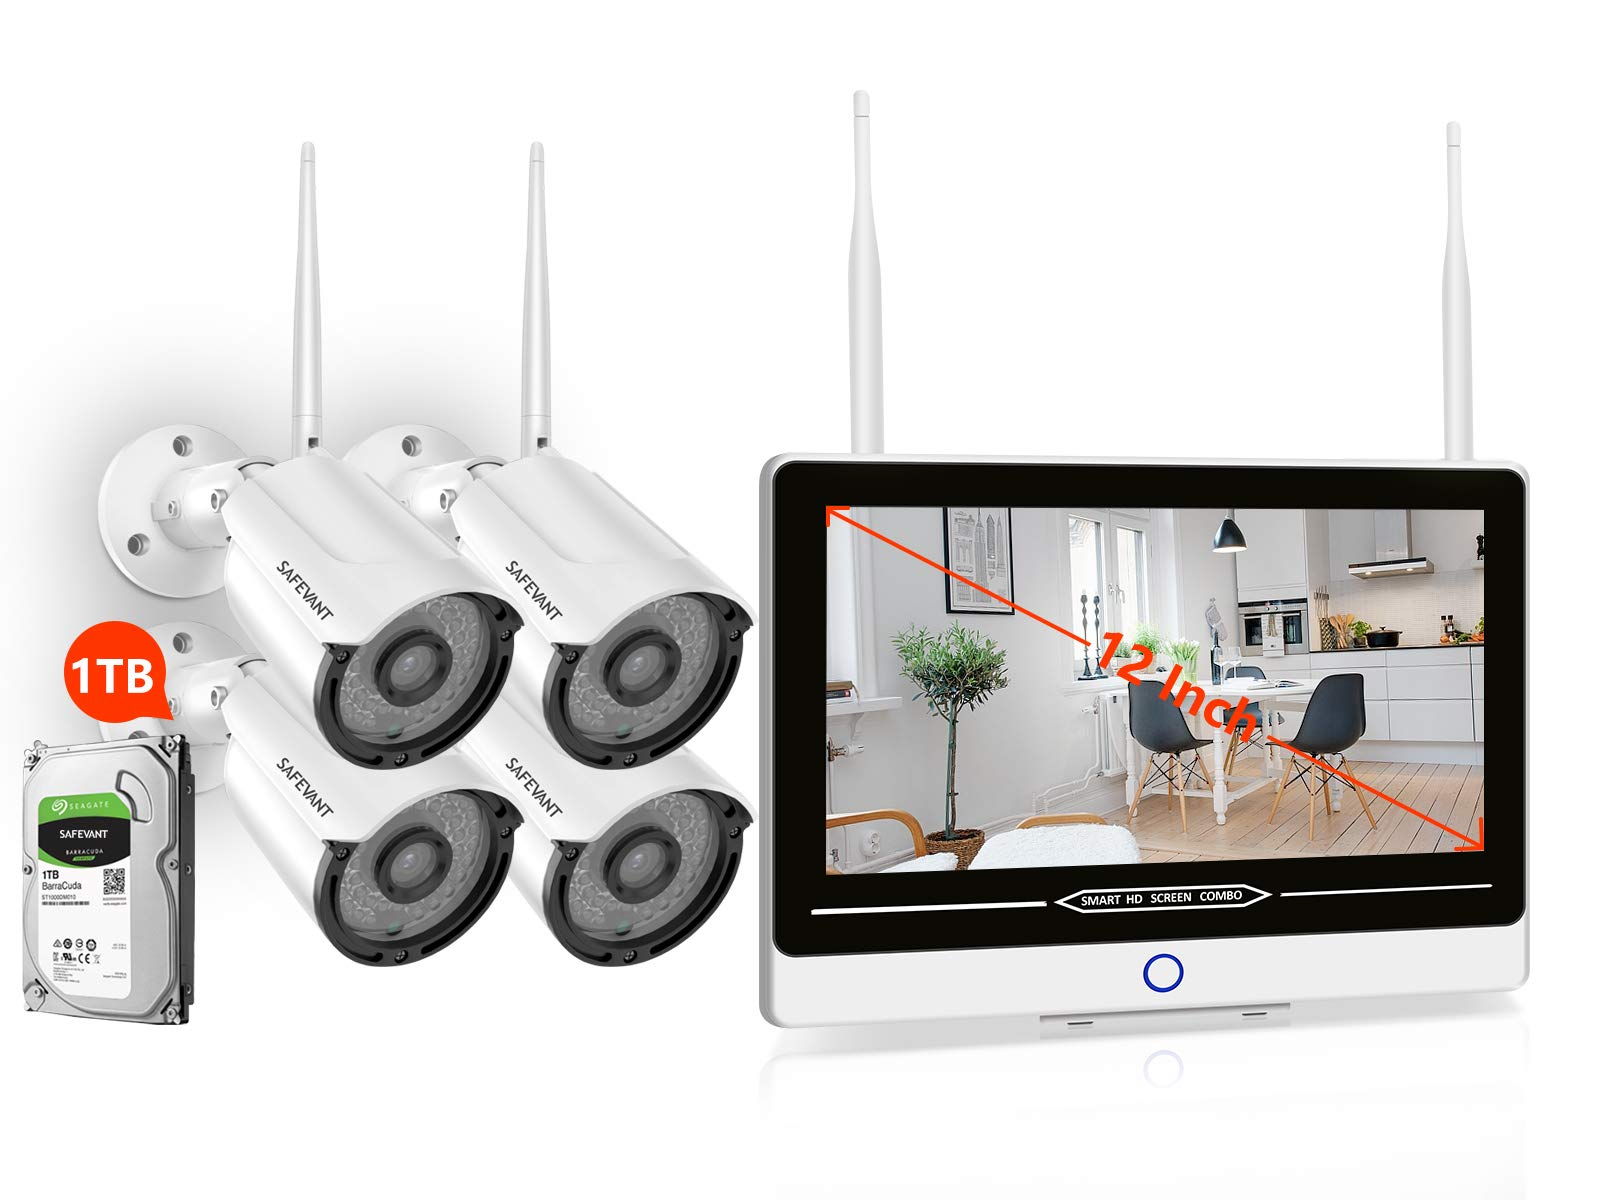 1080P Full HD Wireless Security Camera System with Monitor 1TB Hard Drive,SAFEVANT All in One 8 Channel Home Surveillance Systems 4PCS 2MP Outdoor Indoor IP Cameras with Night Vision Motion Detection